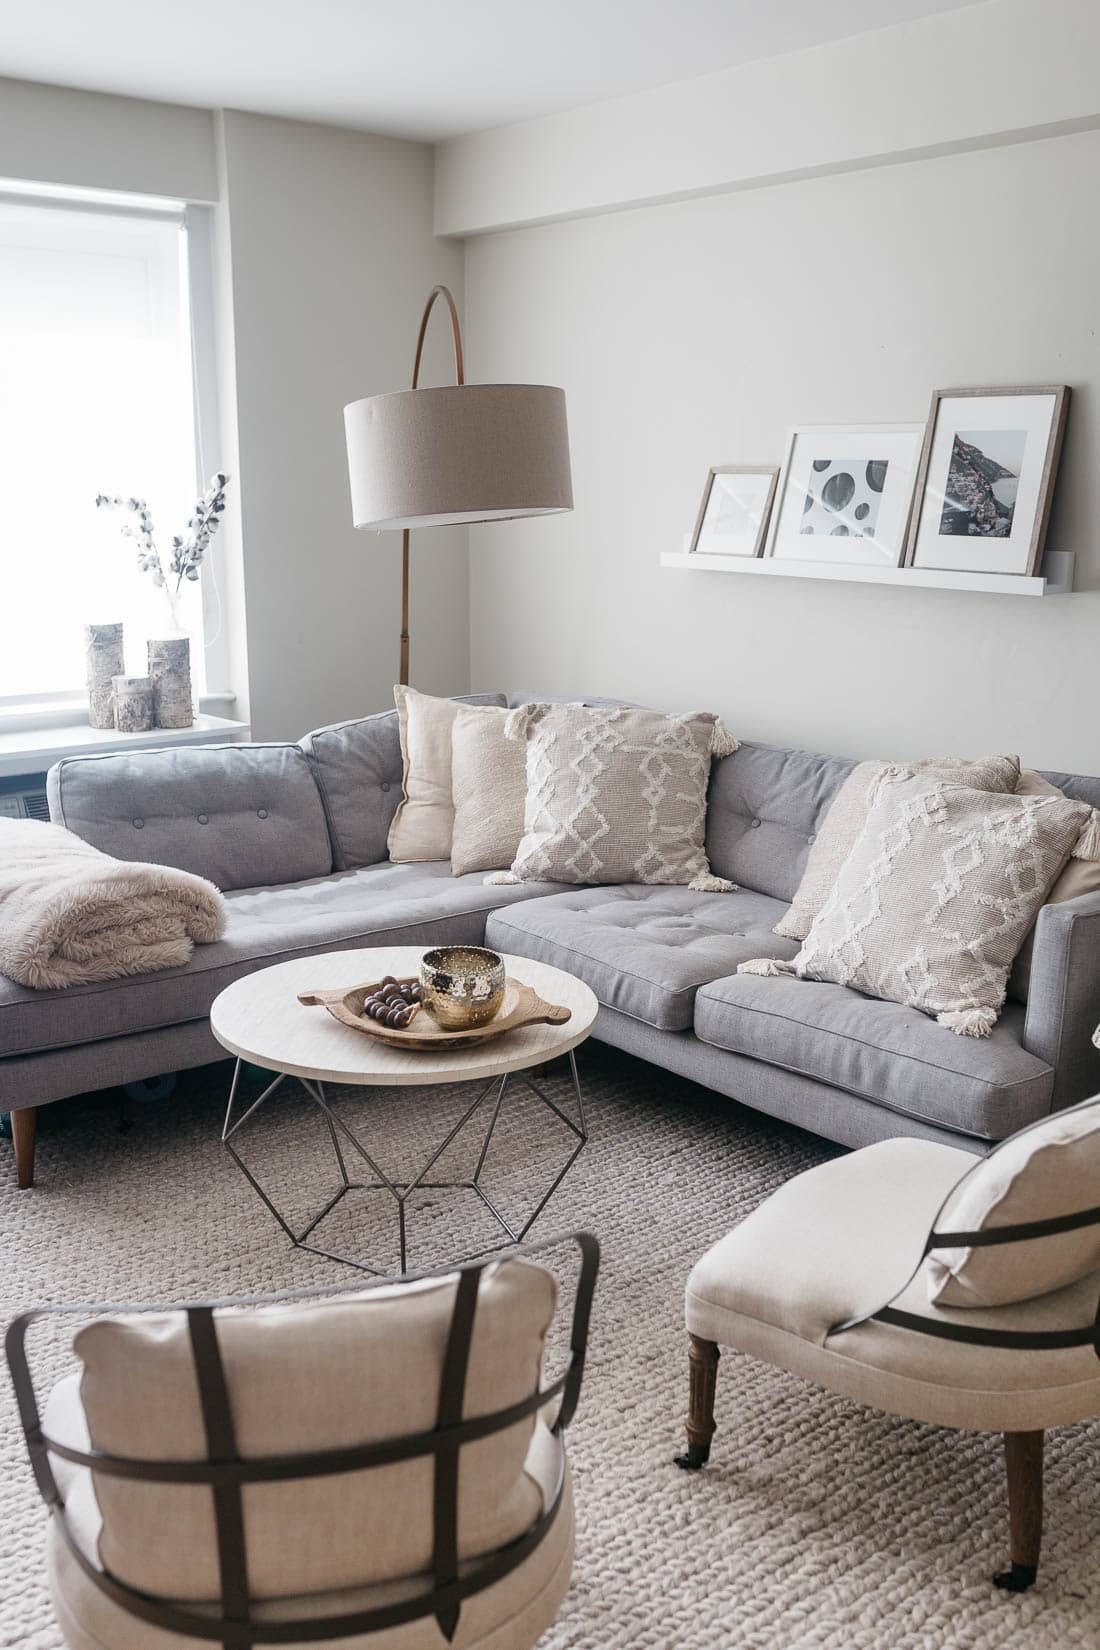 Chic Living Room: BEDROOM INTERIOR UPDATE